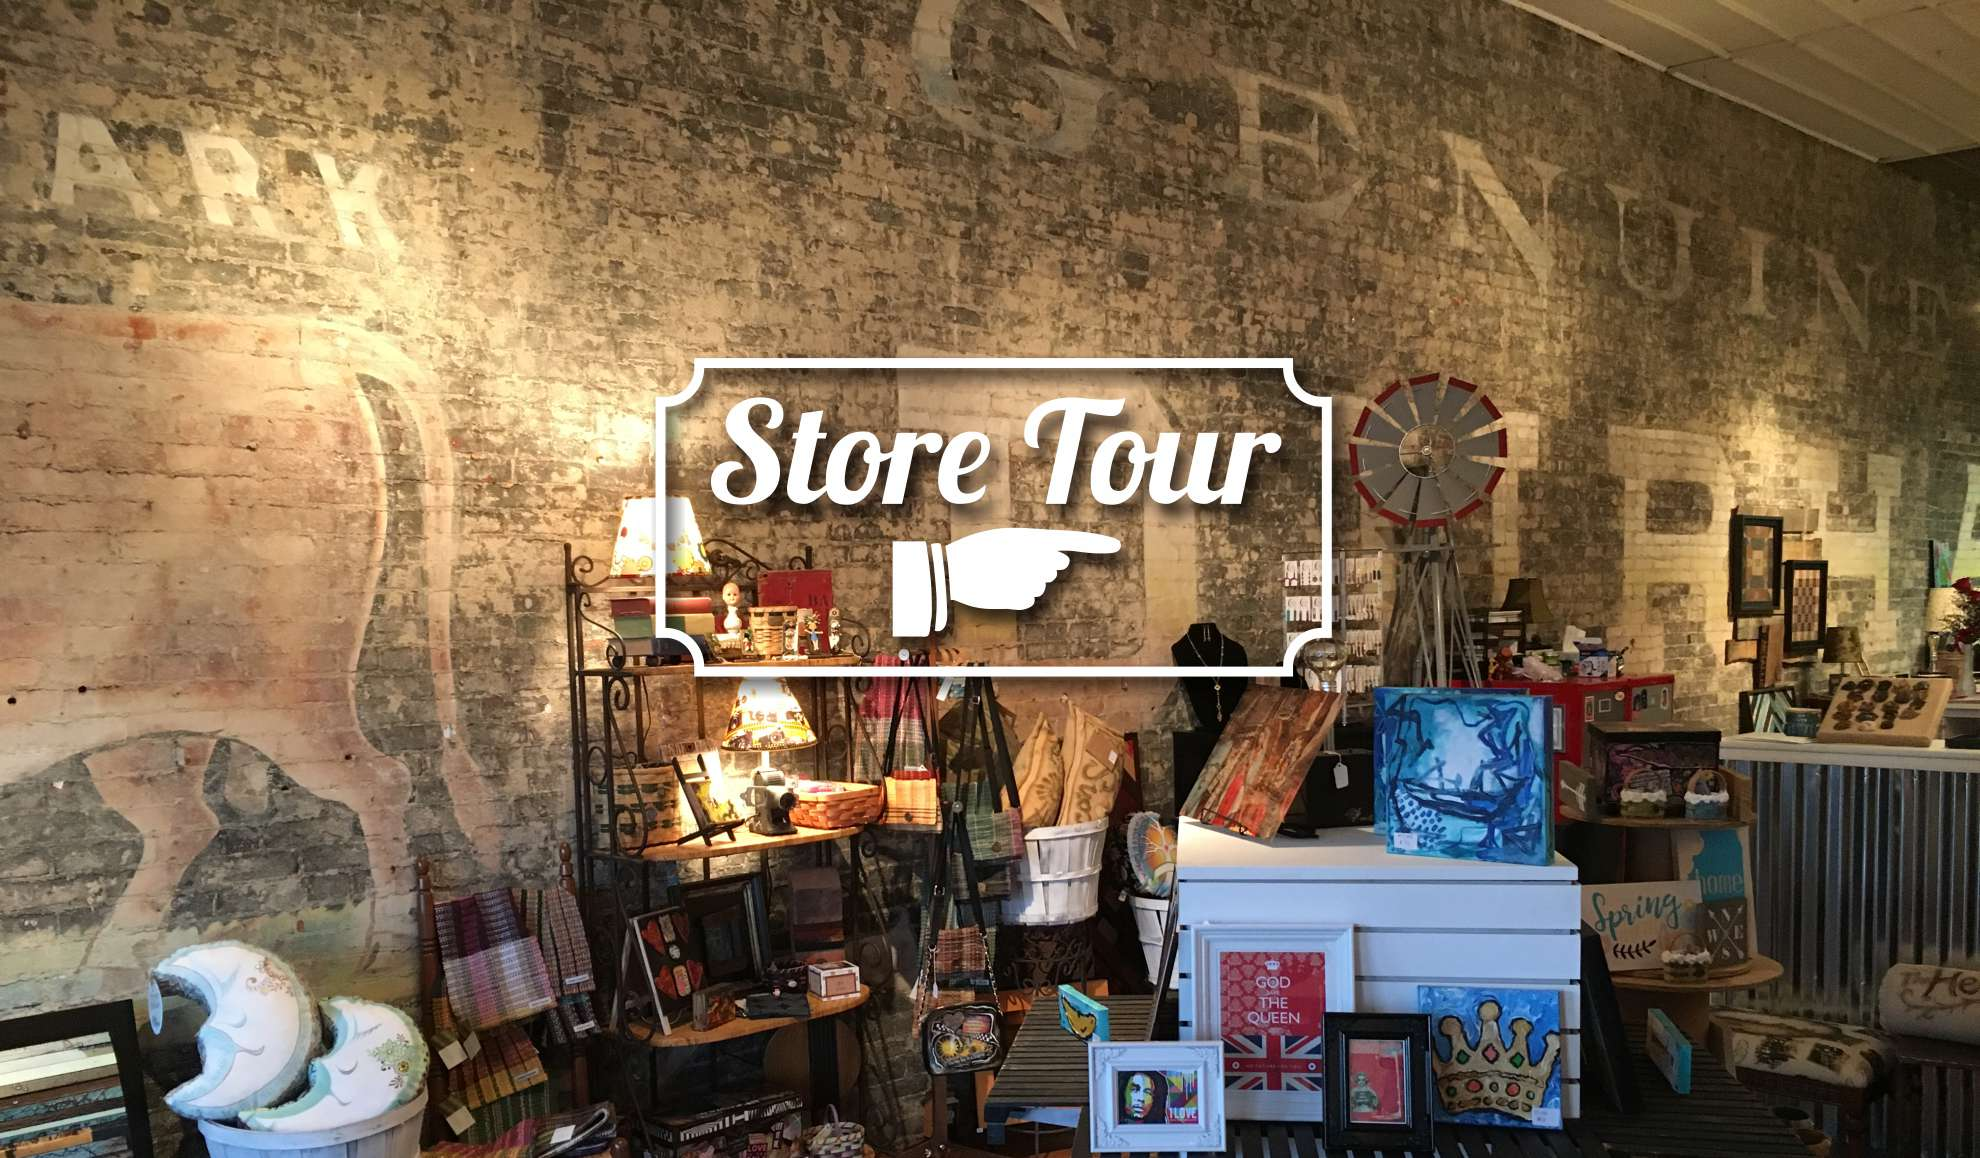 The ArtFarm Store Tour